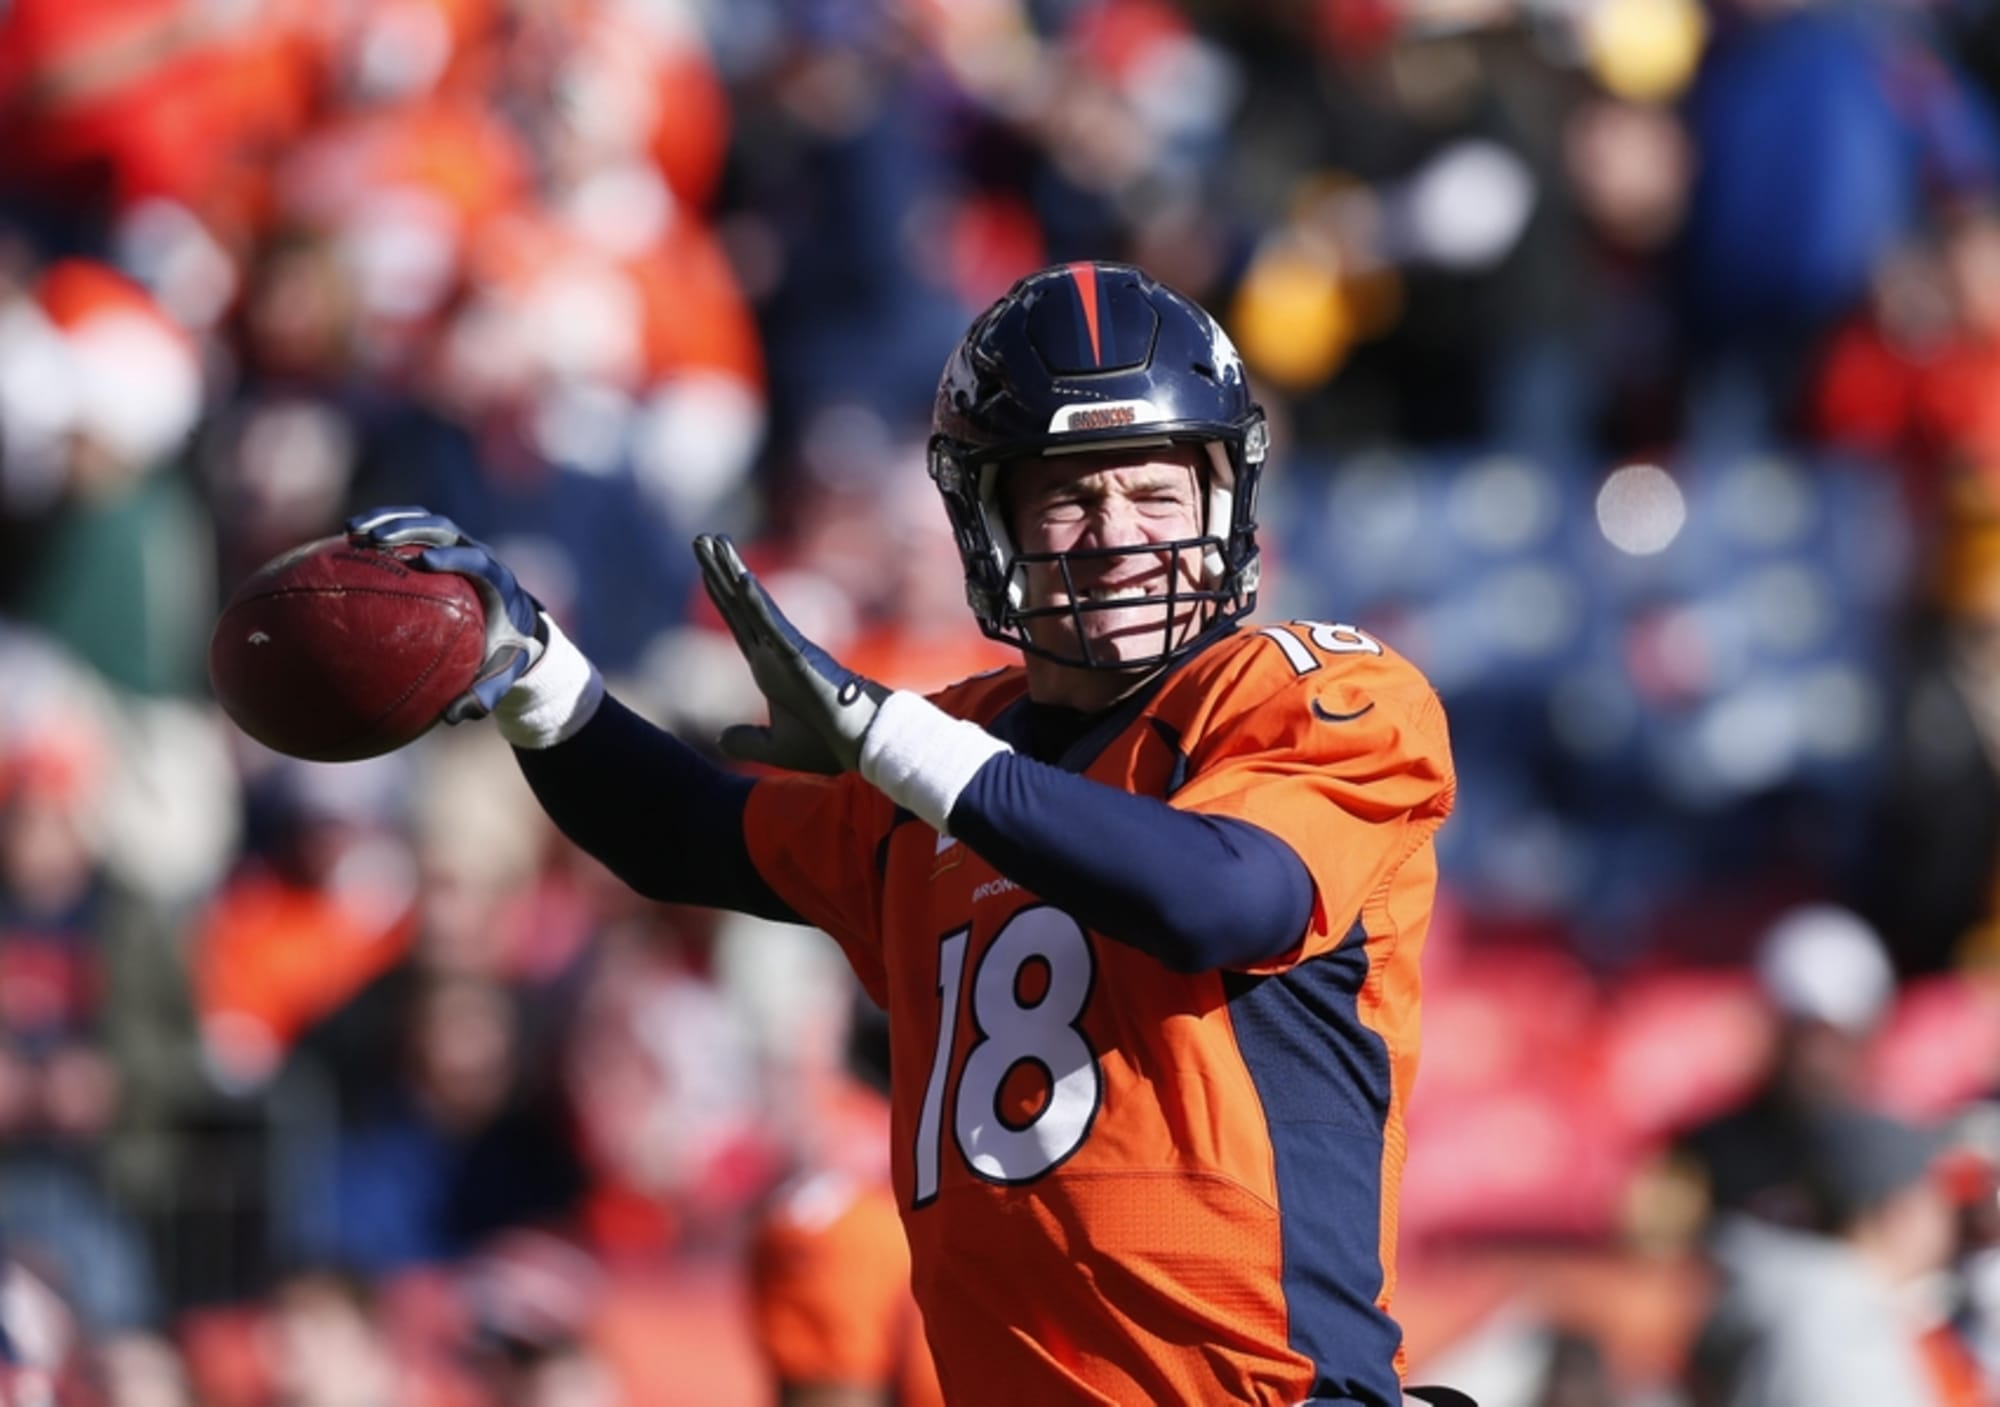 Peyton Manning: Retired QB Cleared of HGH Use by NFL